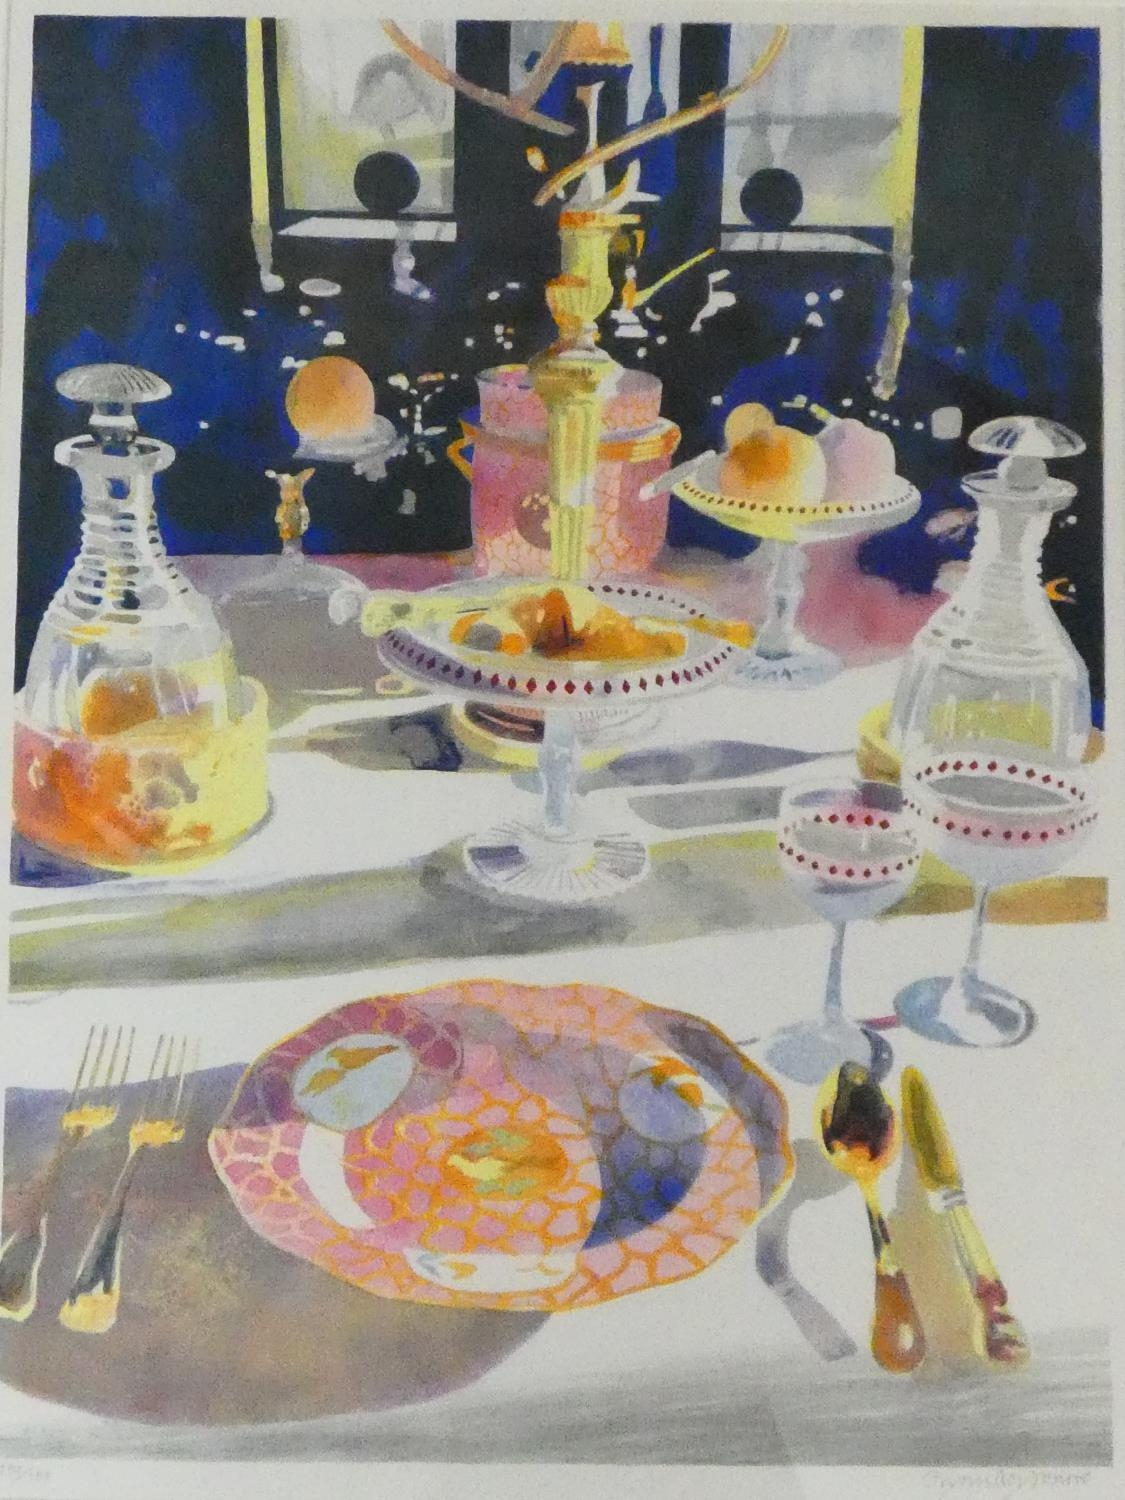 A framed and glazed signed coloured lithograph by British artist and illustrator Glynn Boyd